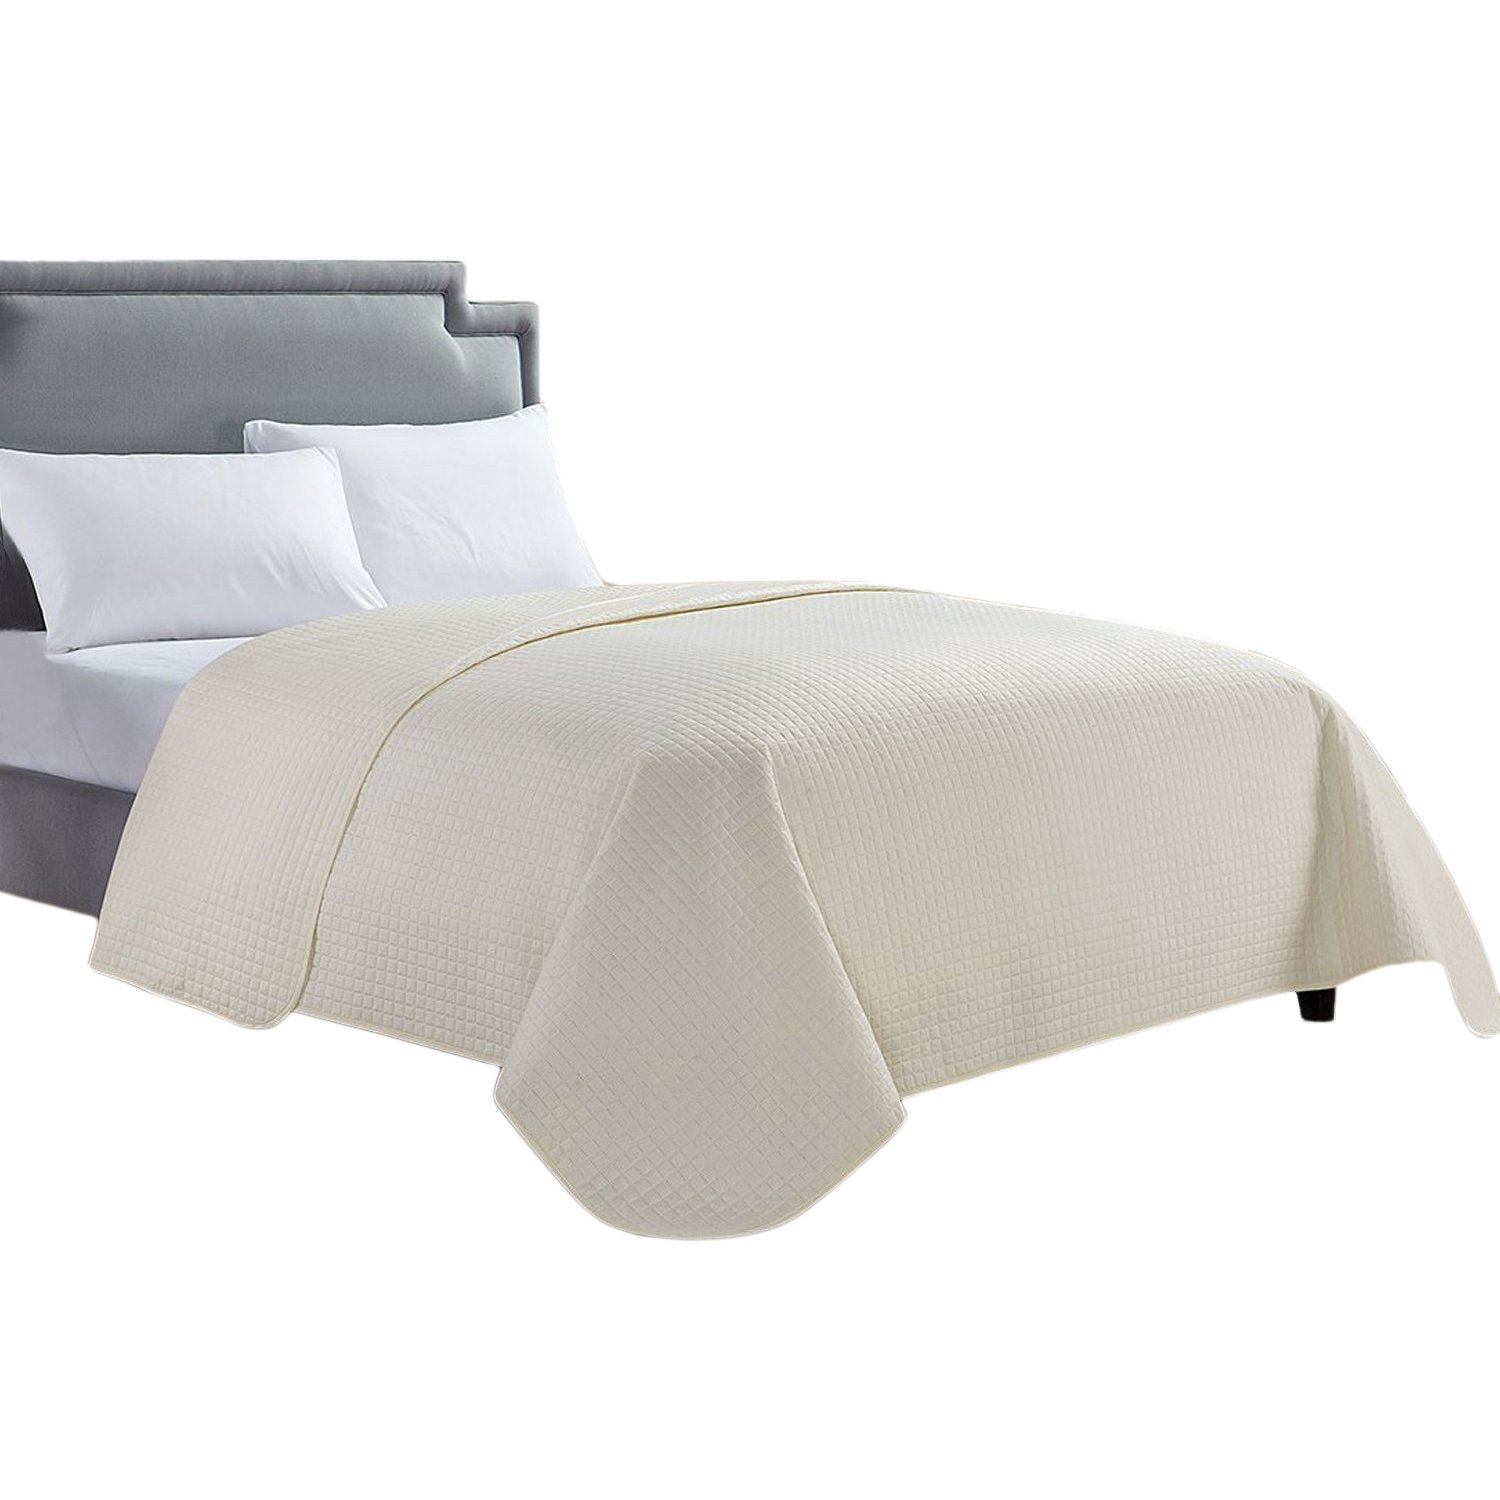 HollyHOME Luxury Checkered Super Soft Solid Single Pinsonic Quilted Bed Quilt Bedspread Bed Cover, Ivory, Full/Queen